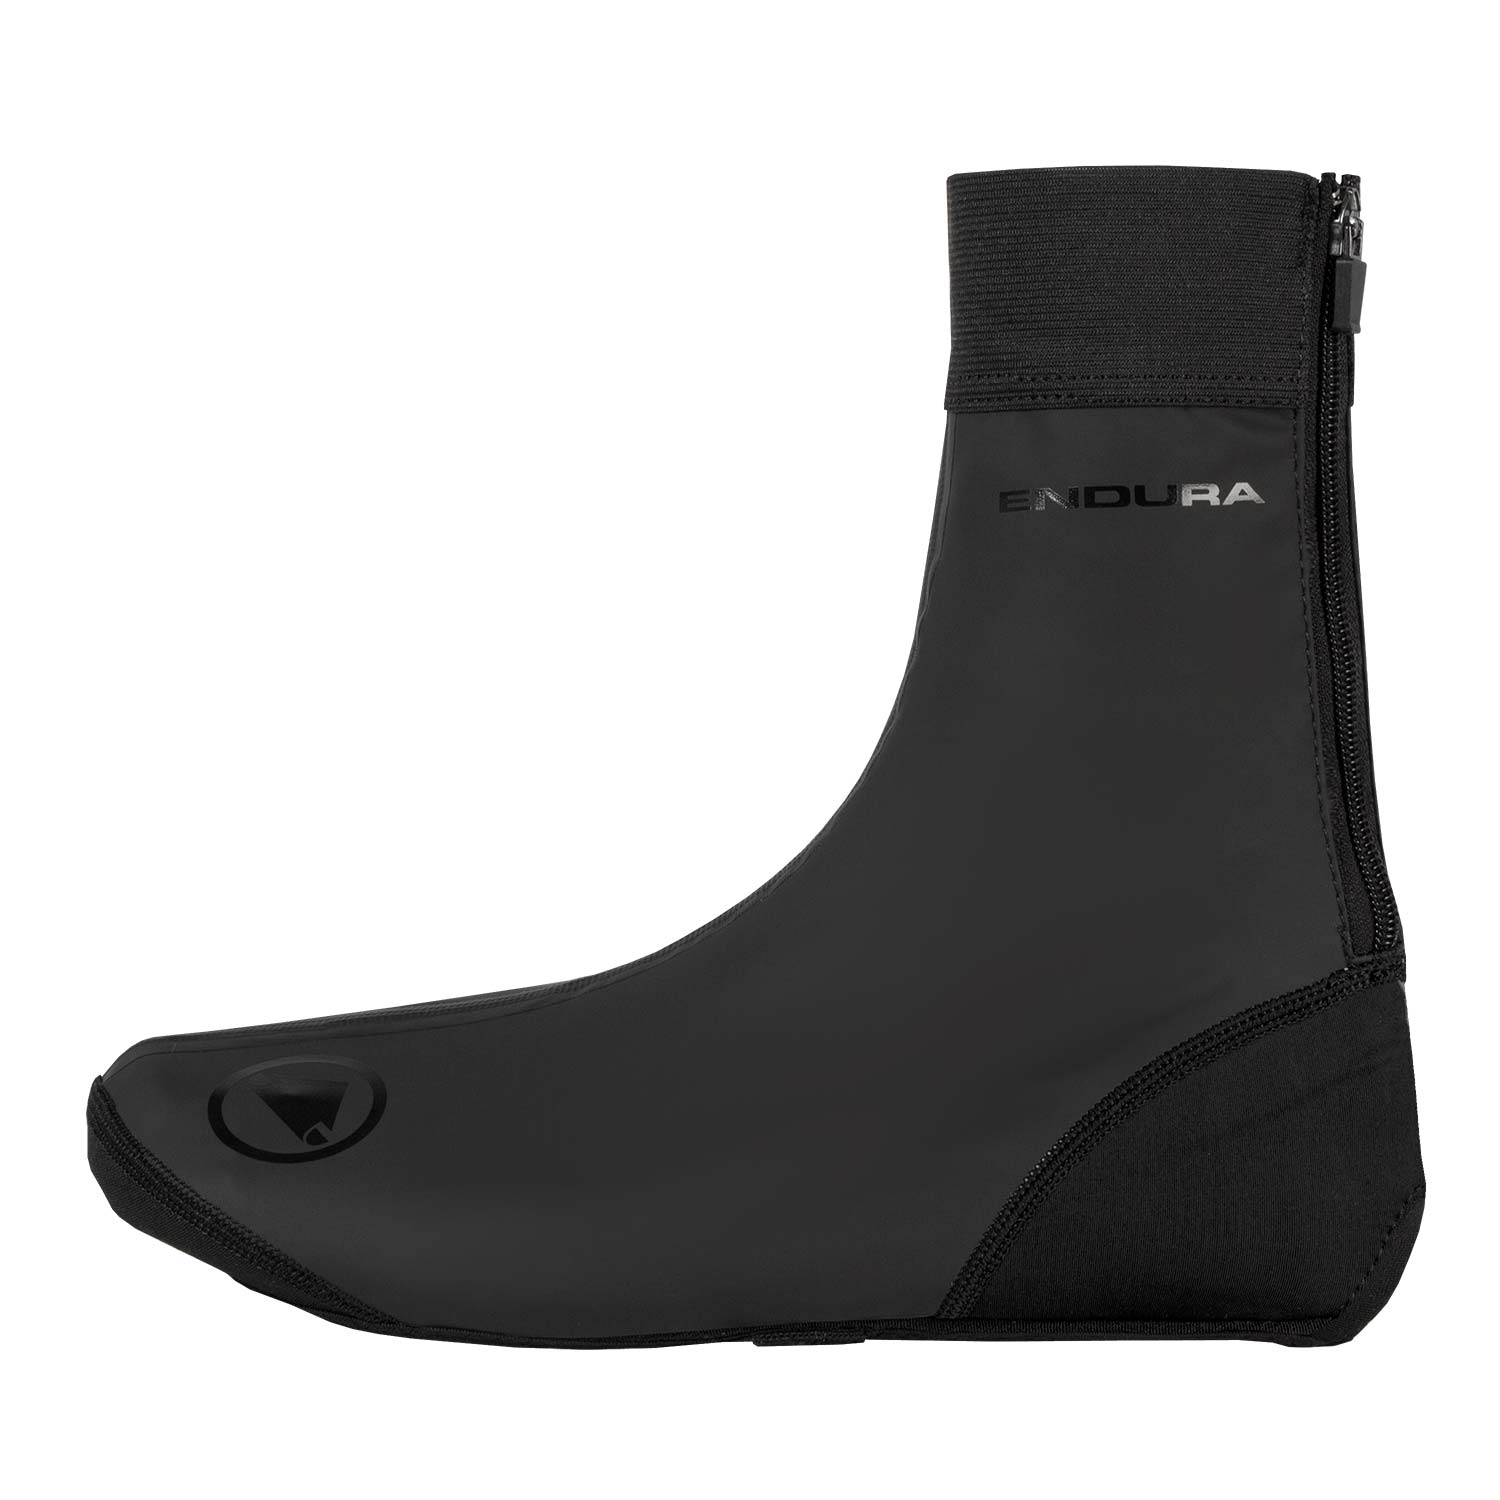 Windchill Overshoe Black